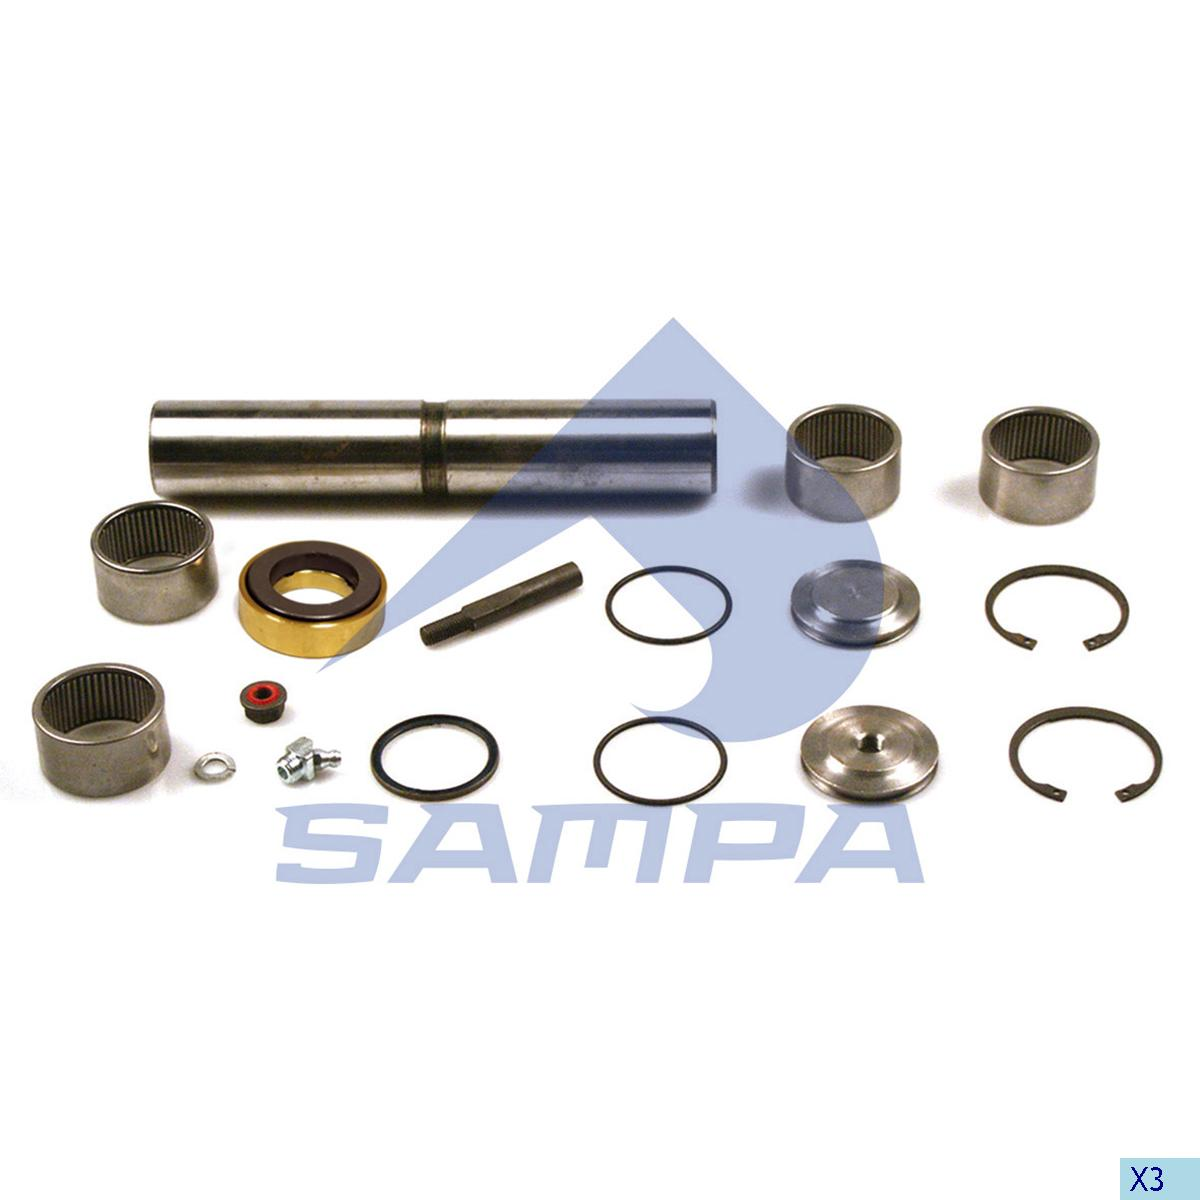 King Pin Kit, Axle Steering Knuckle, Mercedes, Power Unit